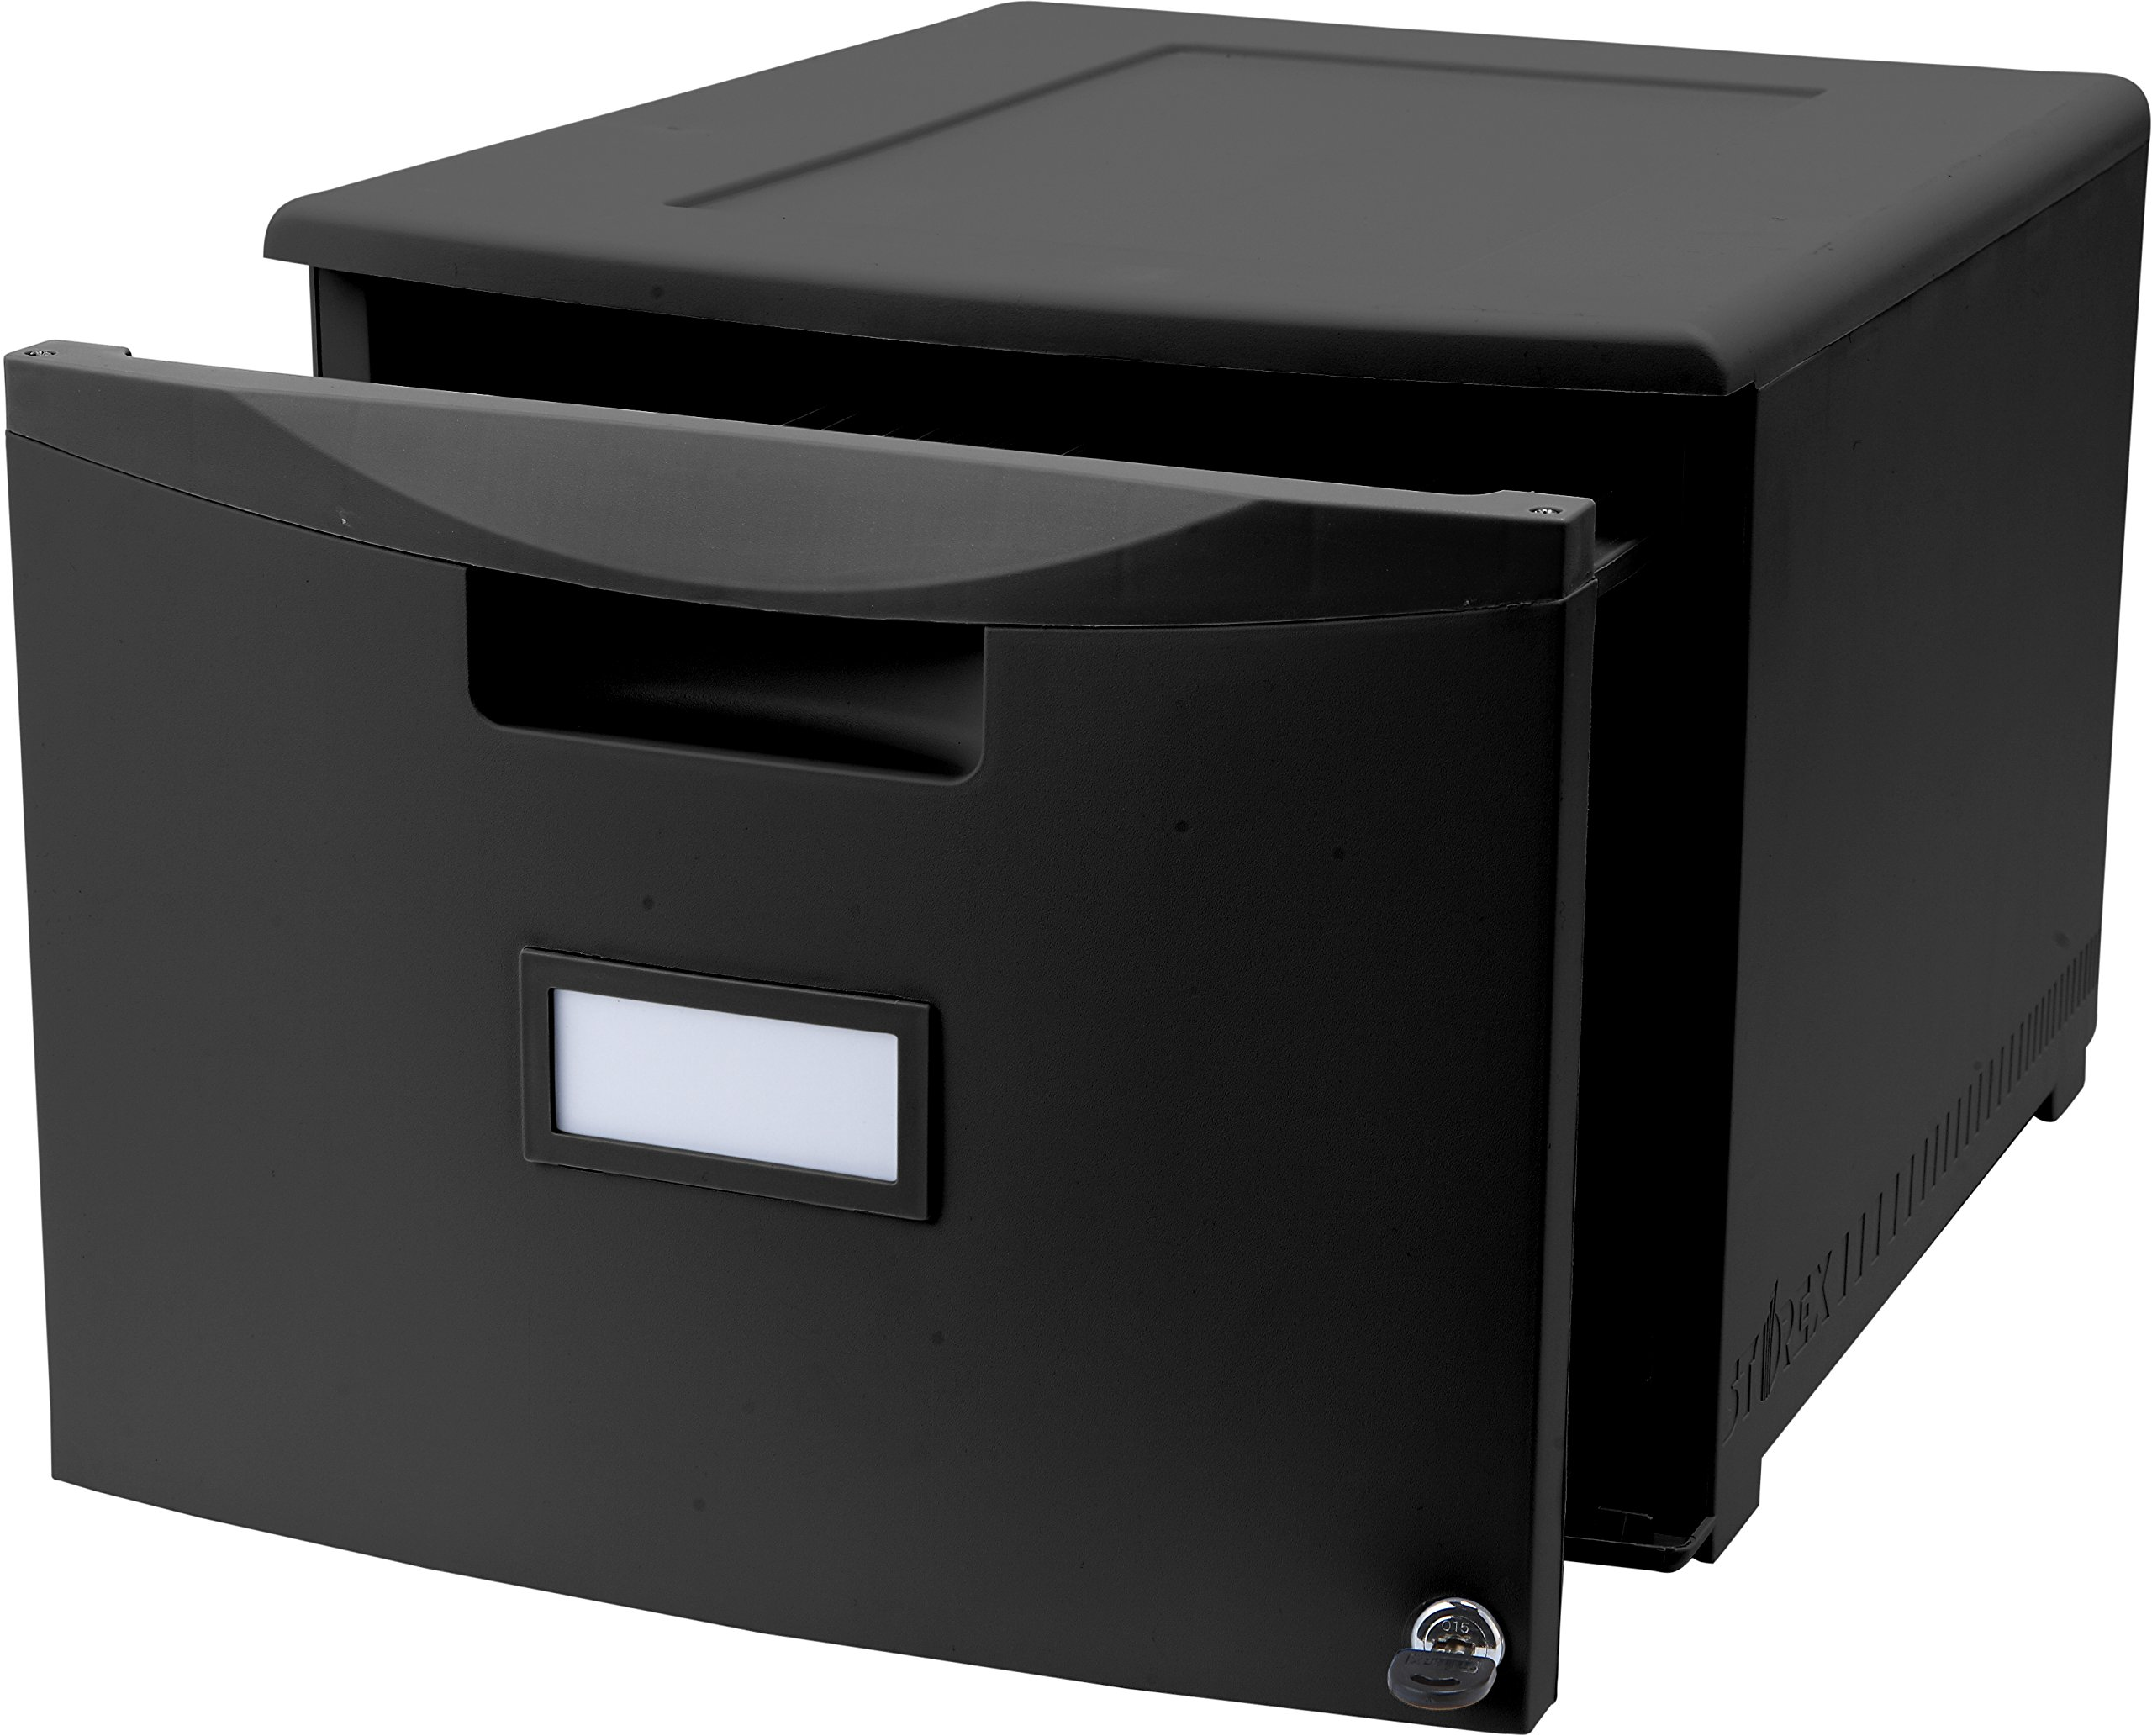 Storex Single Drawer Mini File Cabinet with Lock, Legal/Letter, 18.25 x 14.75 x 12.75 Inches, Black (STX61260B01C)